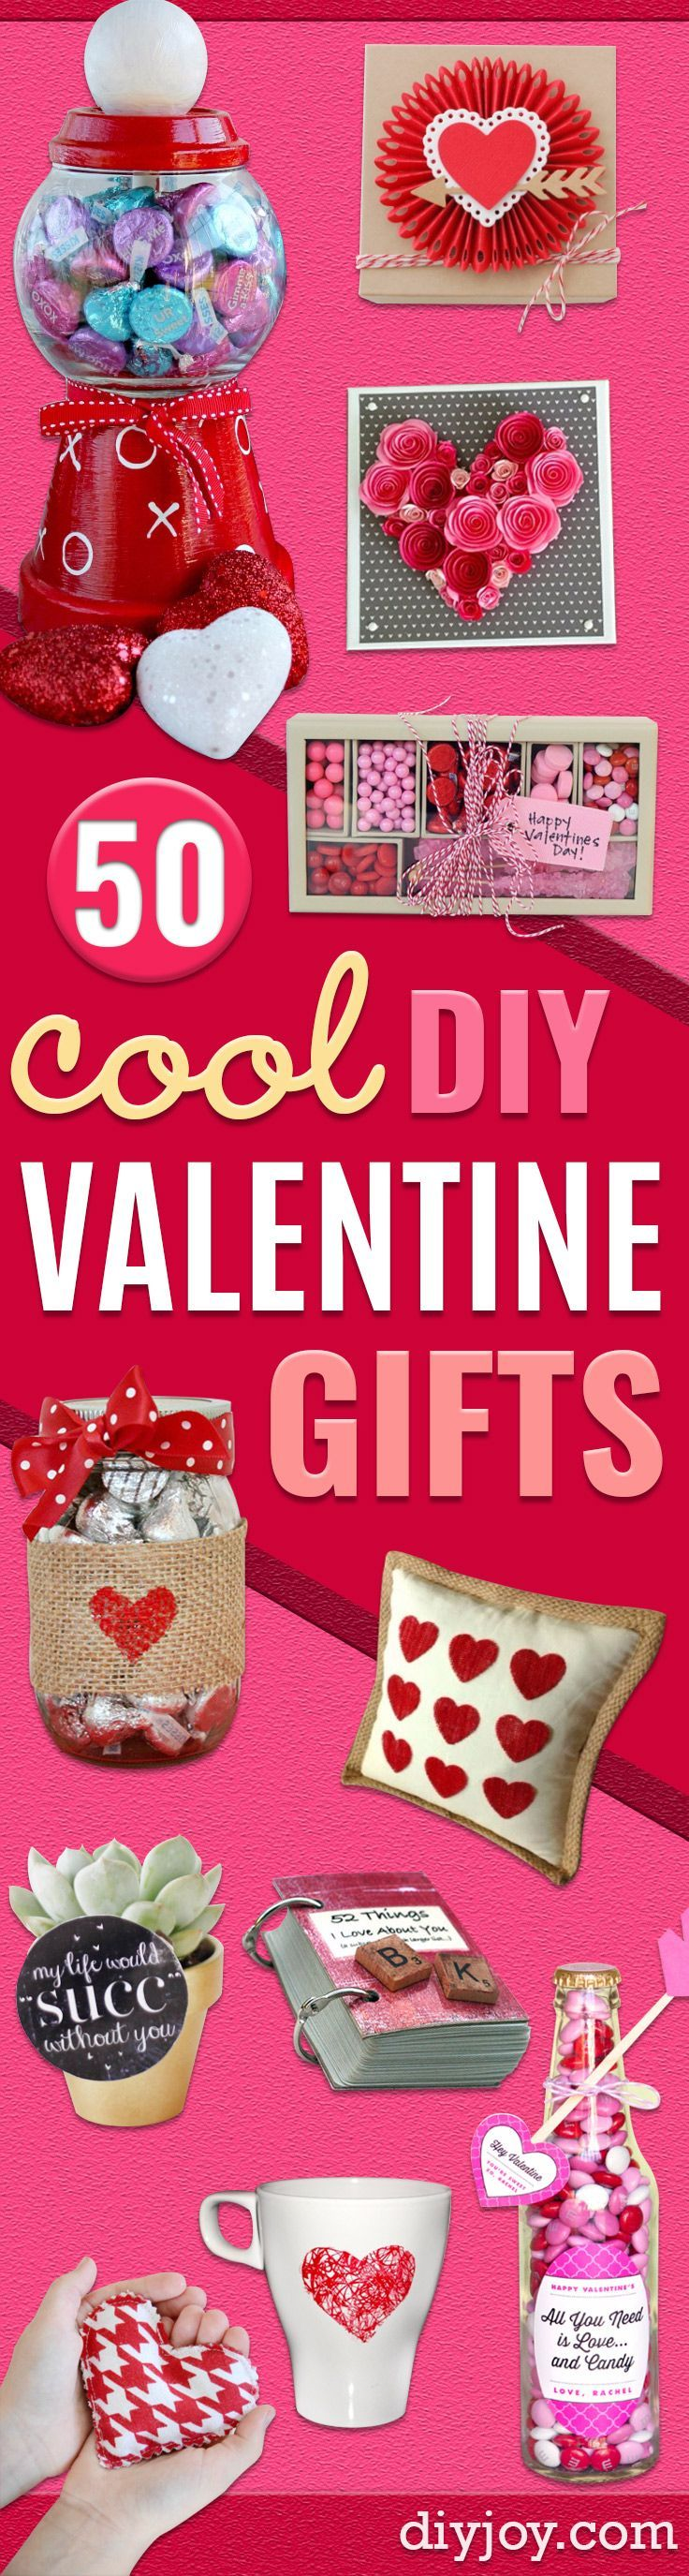 Best 10+ Valentine day gifts ideas on Pinterest | Diy valentines ...